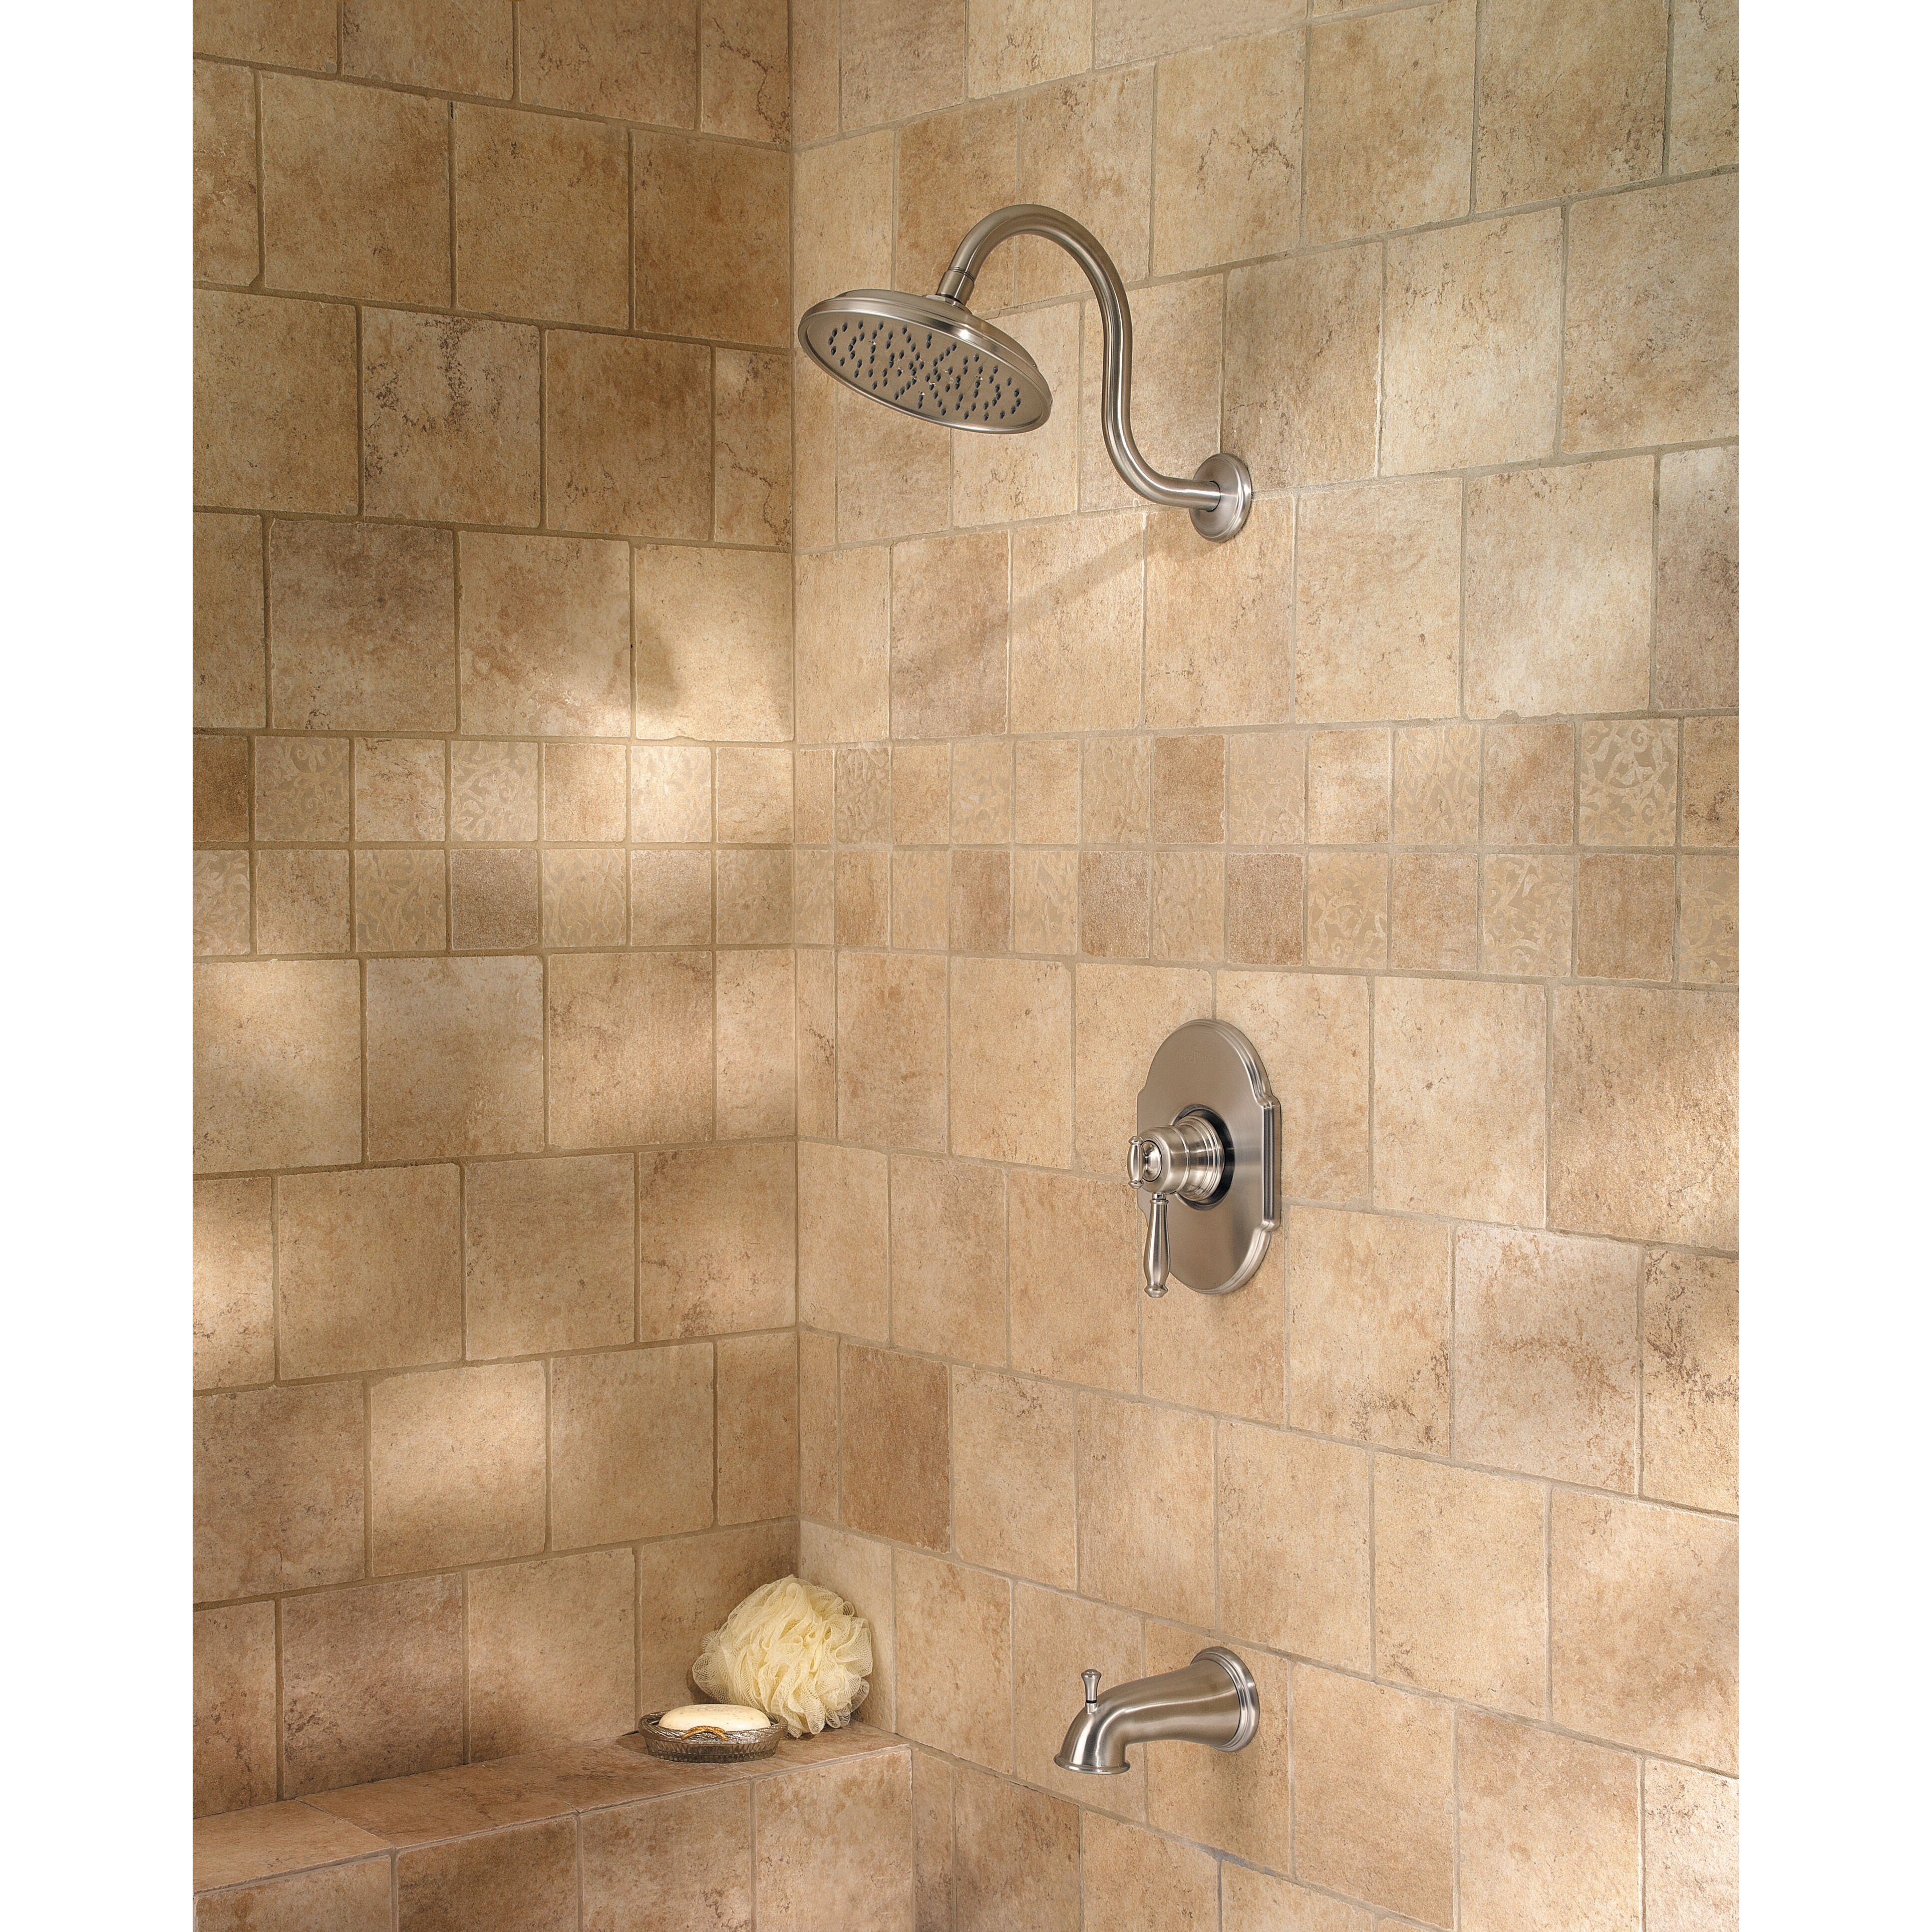 Pfister bathroom faucets reviews - Pfister Hanover Tub And Shower Faucet With Lever Handle Amp Reviews Pfister Bathroom Faucets Reviews